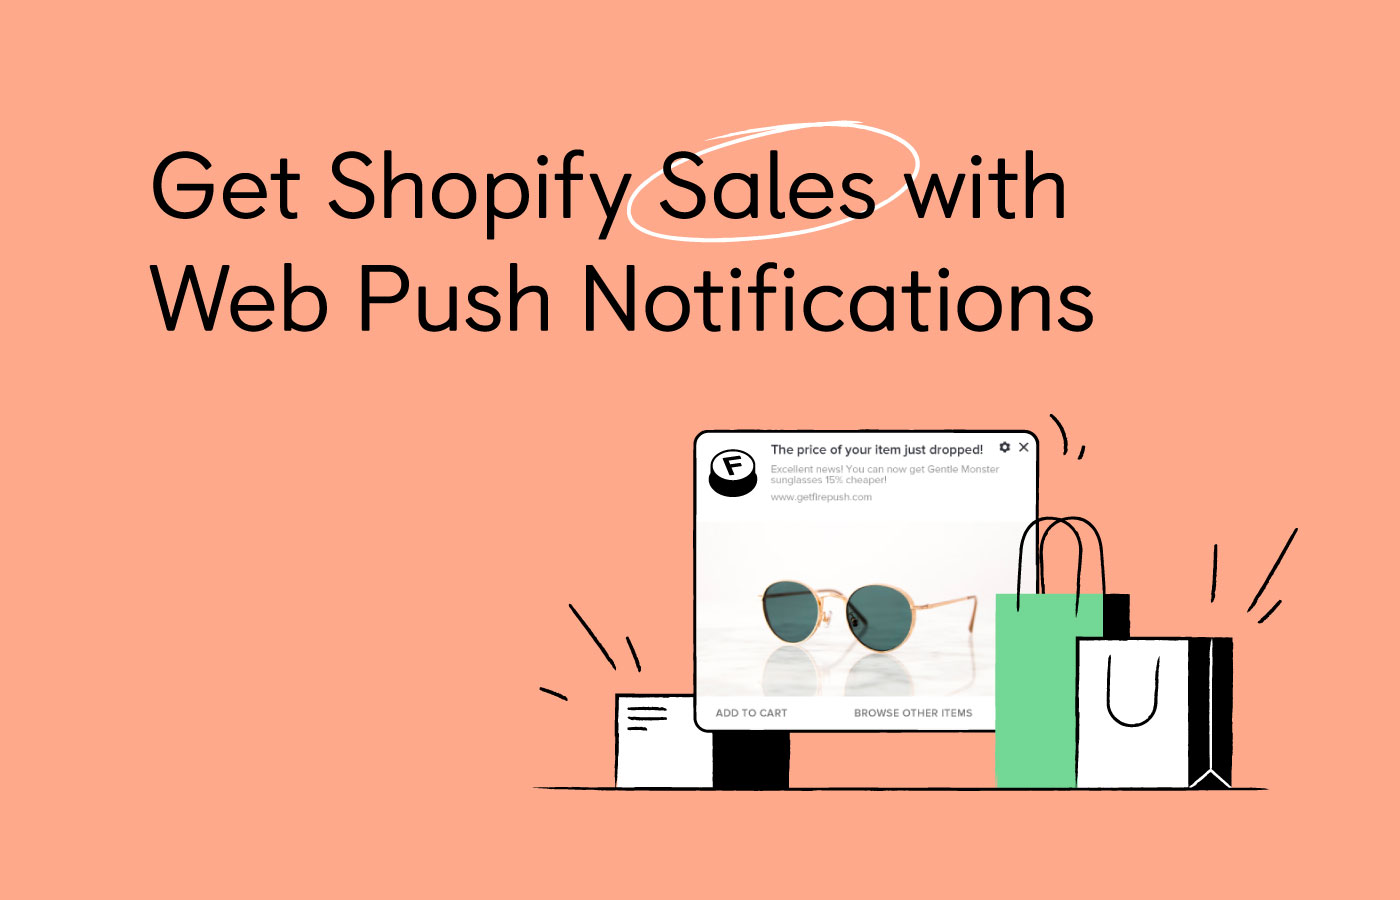 Increase Push Notifications Subscribers to Get Shopify Sales [Guide 2021]